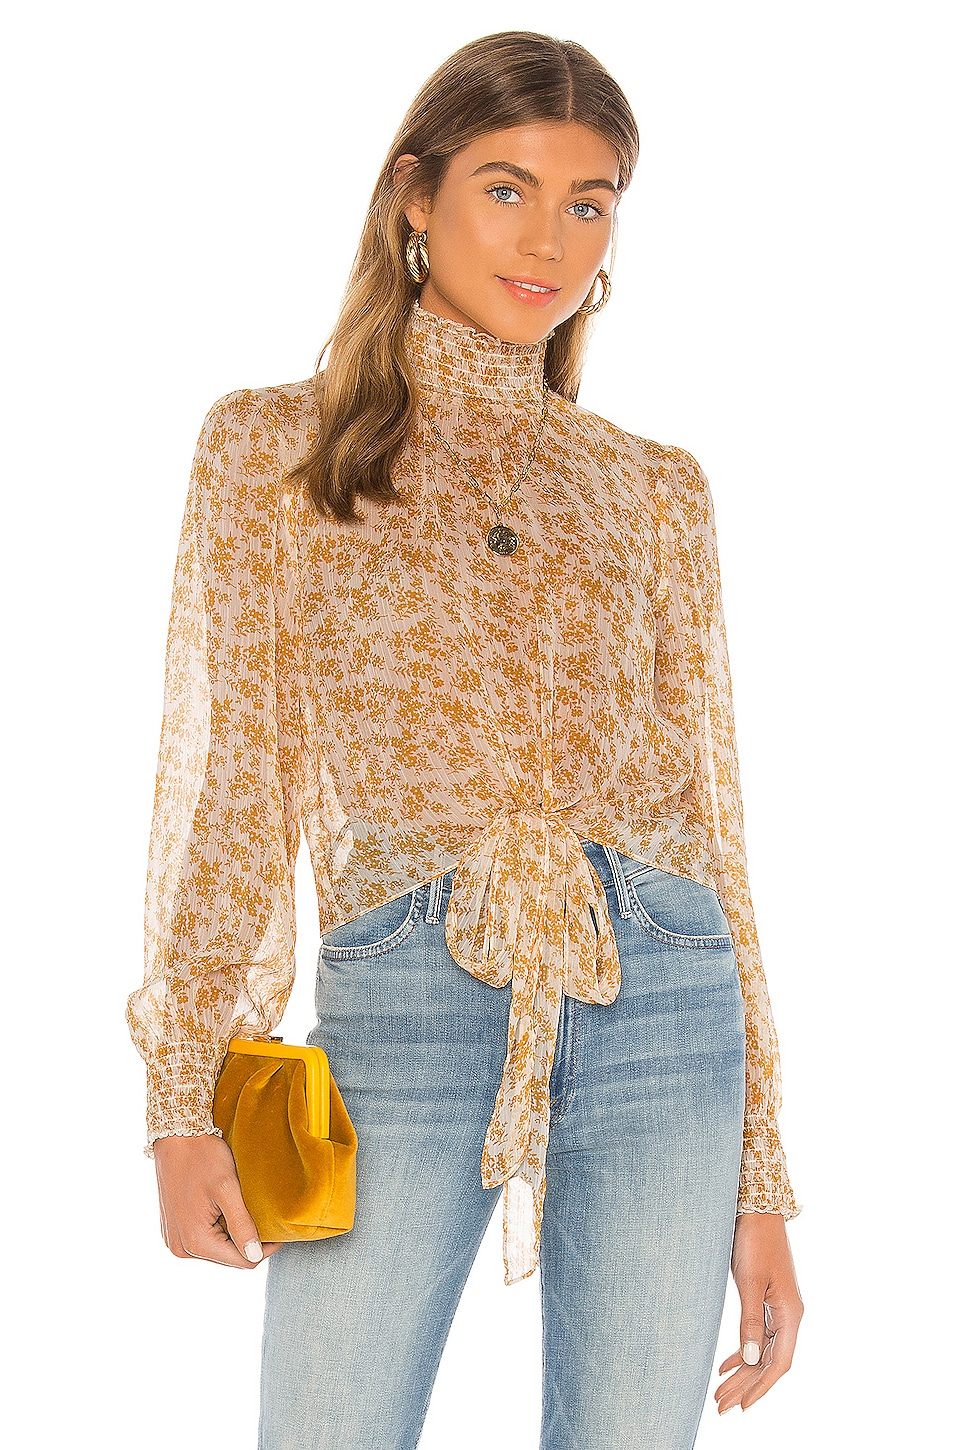 Lana High Neck Blouse             MINKPINK                                                                                                       CA$ 98.11 8